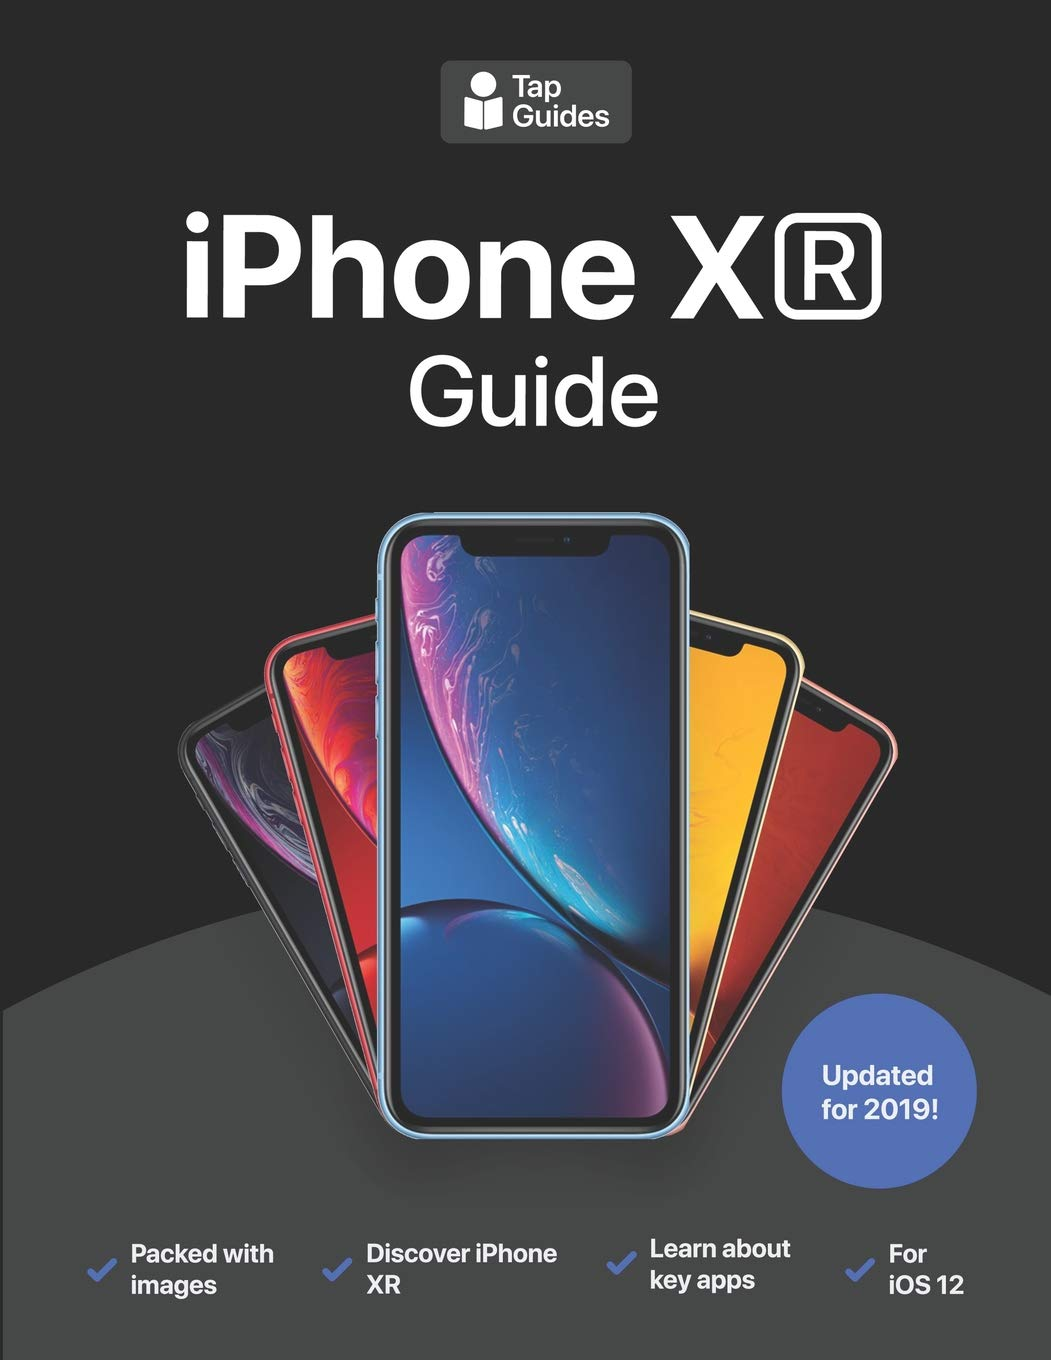 Image OfIPhone XR Guide: The Ultimate Guide To IPhone XR And IOS 12